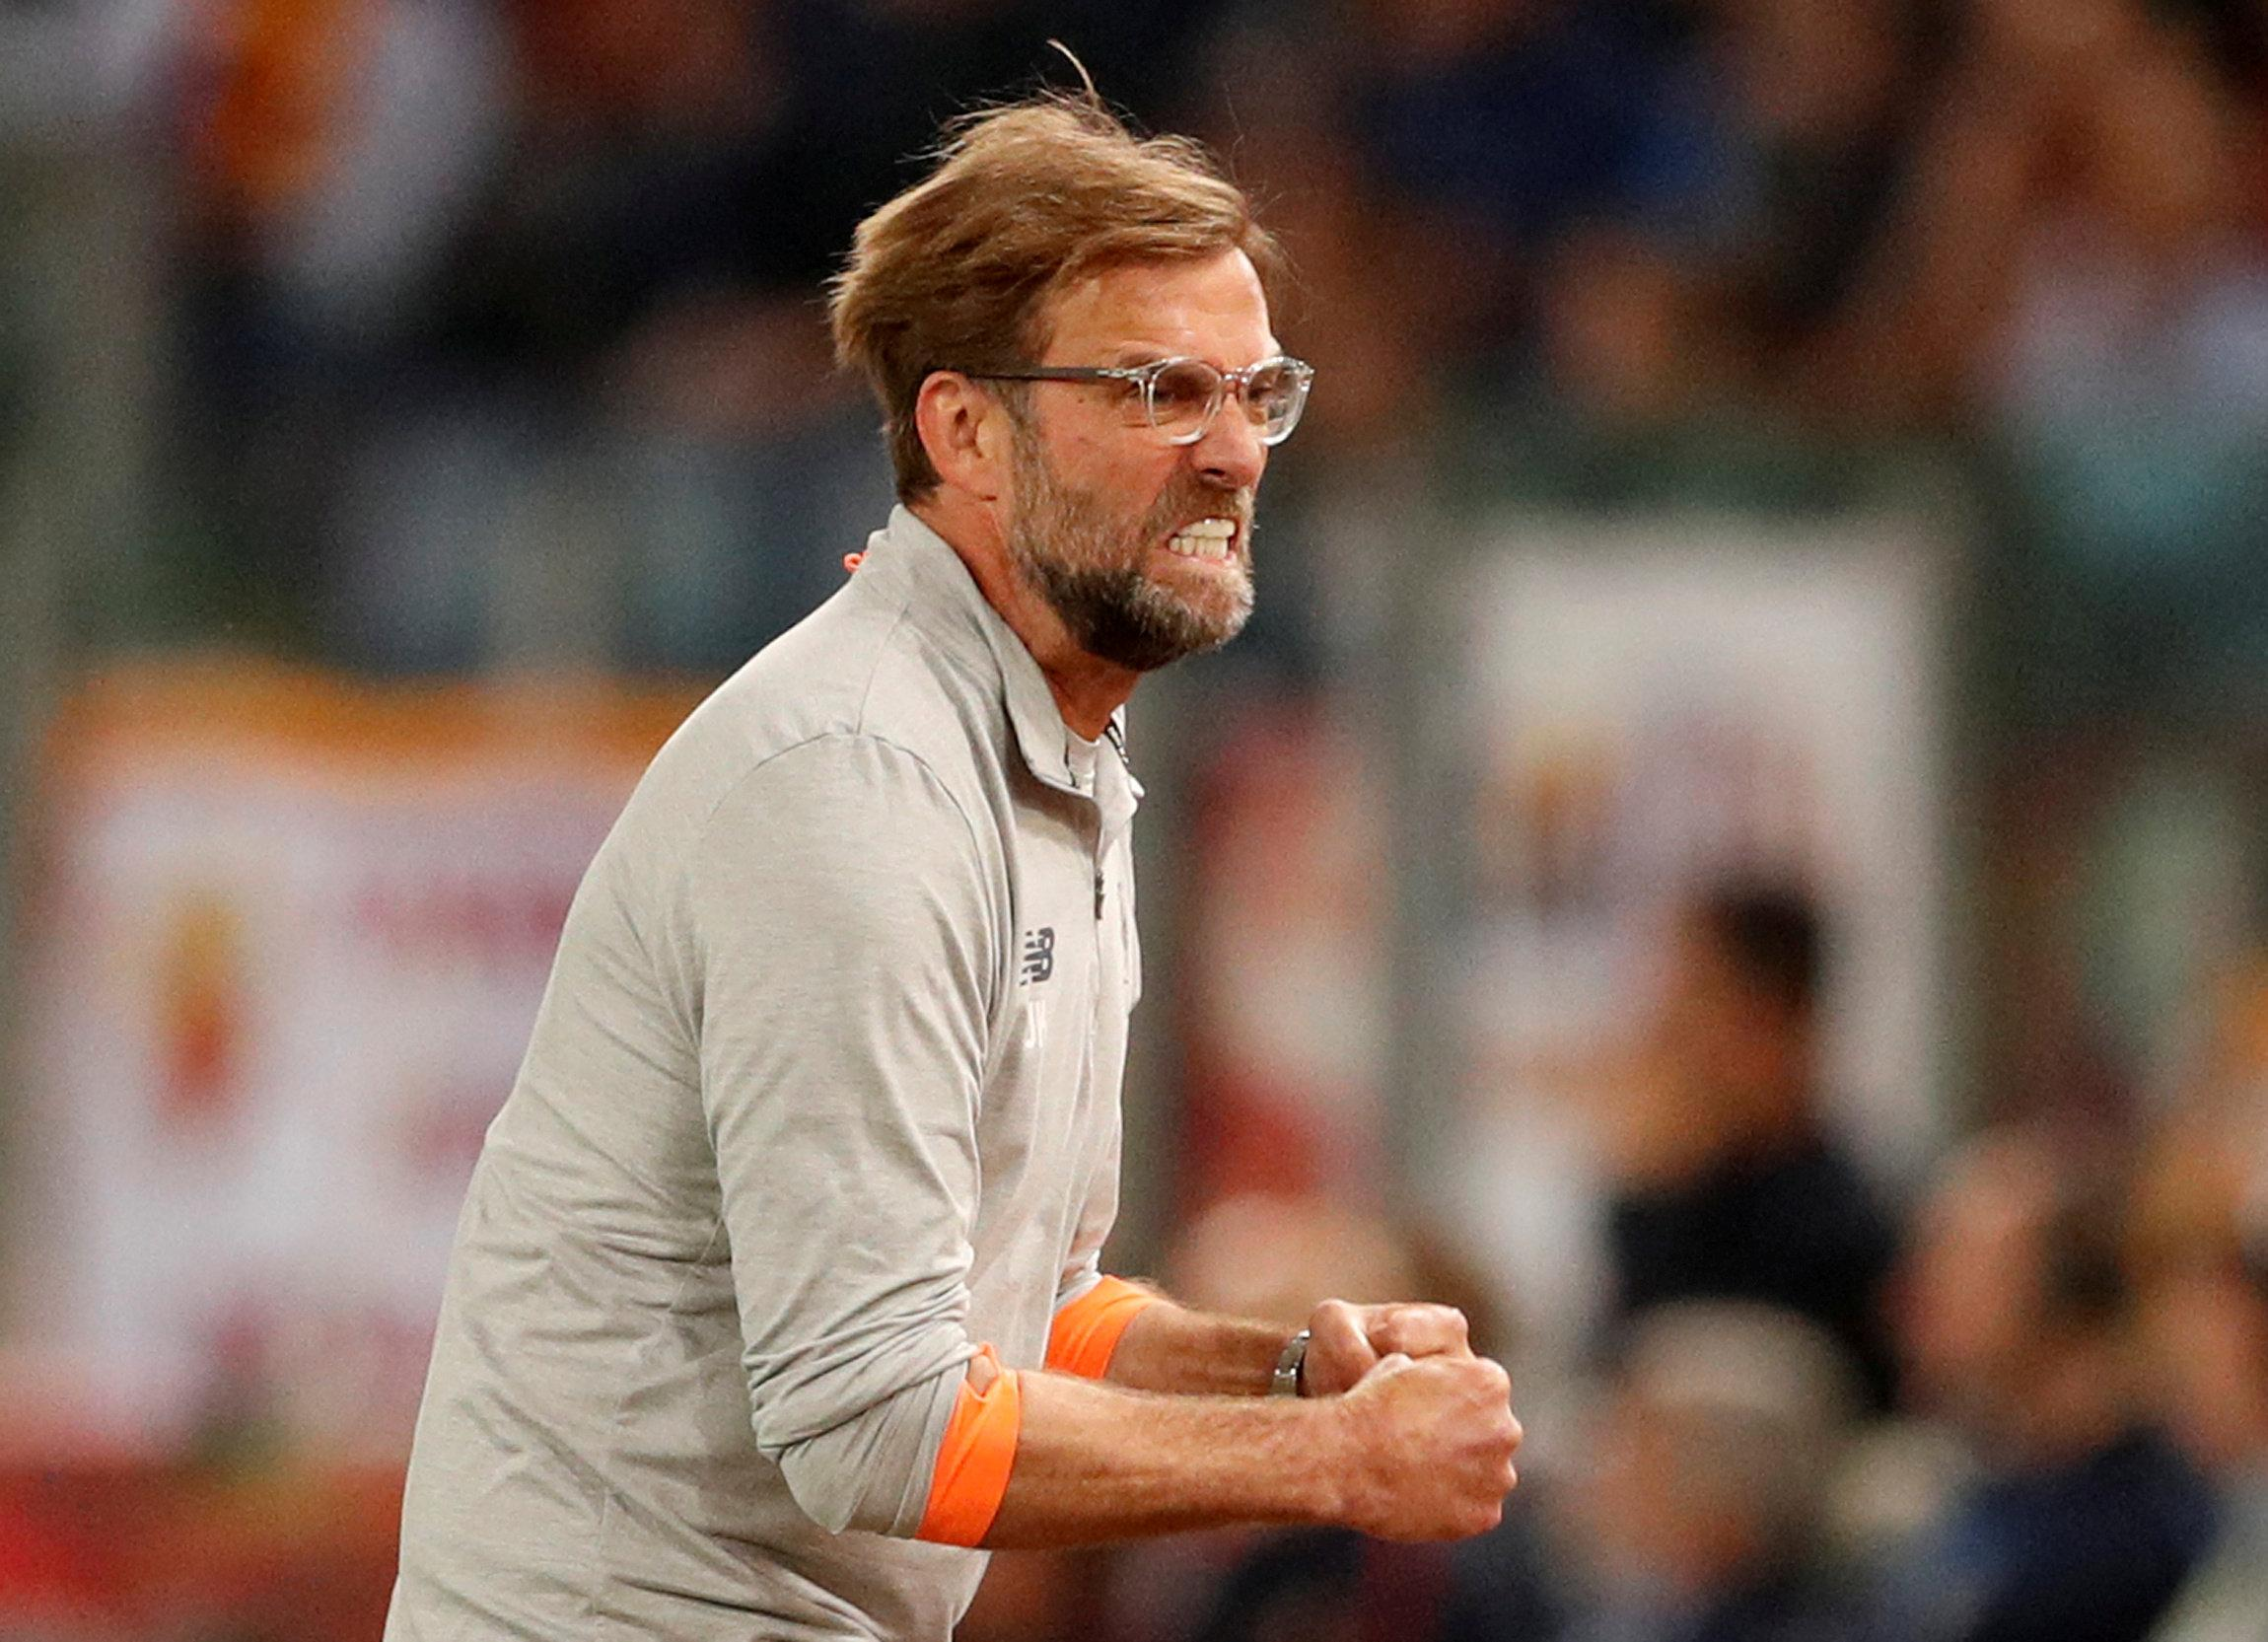 We've seen less of angry Klopp this season